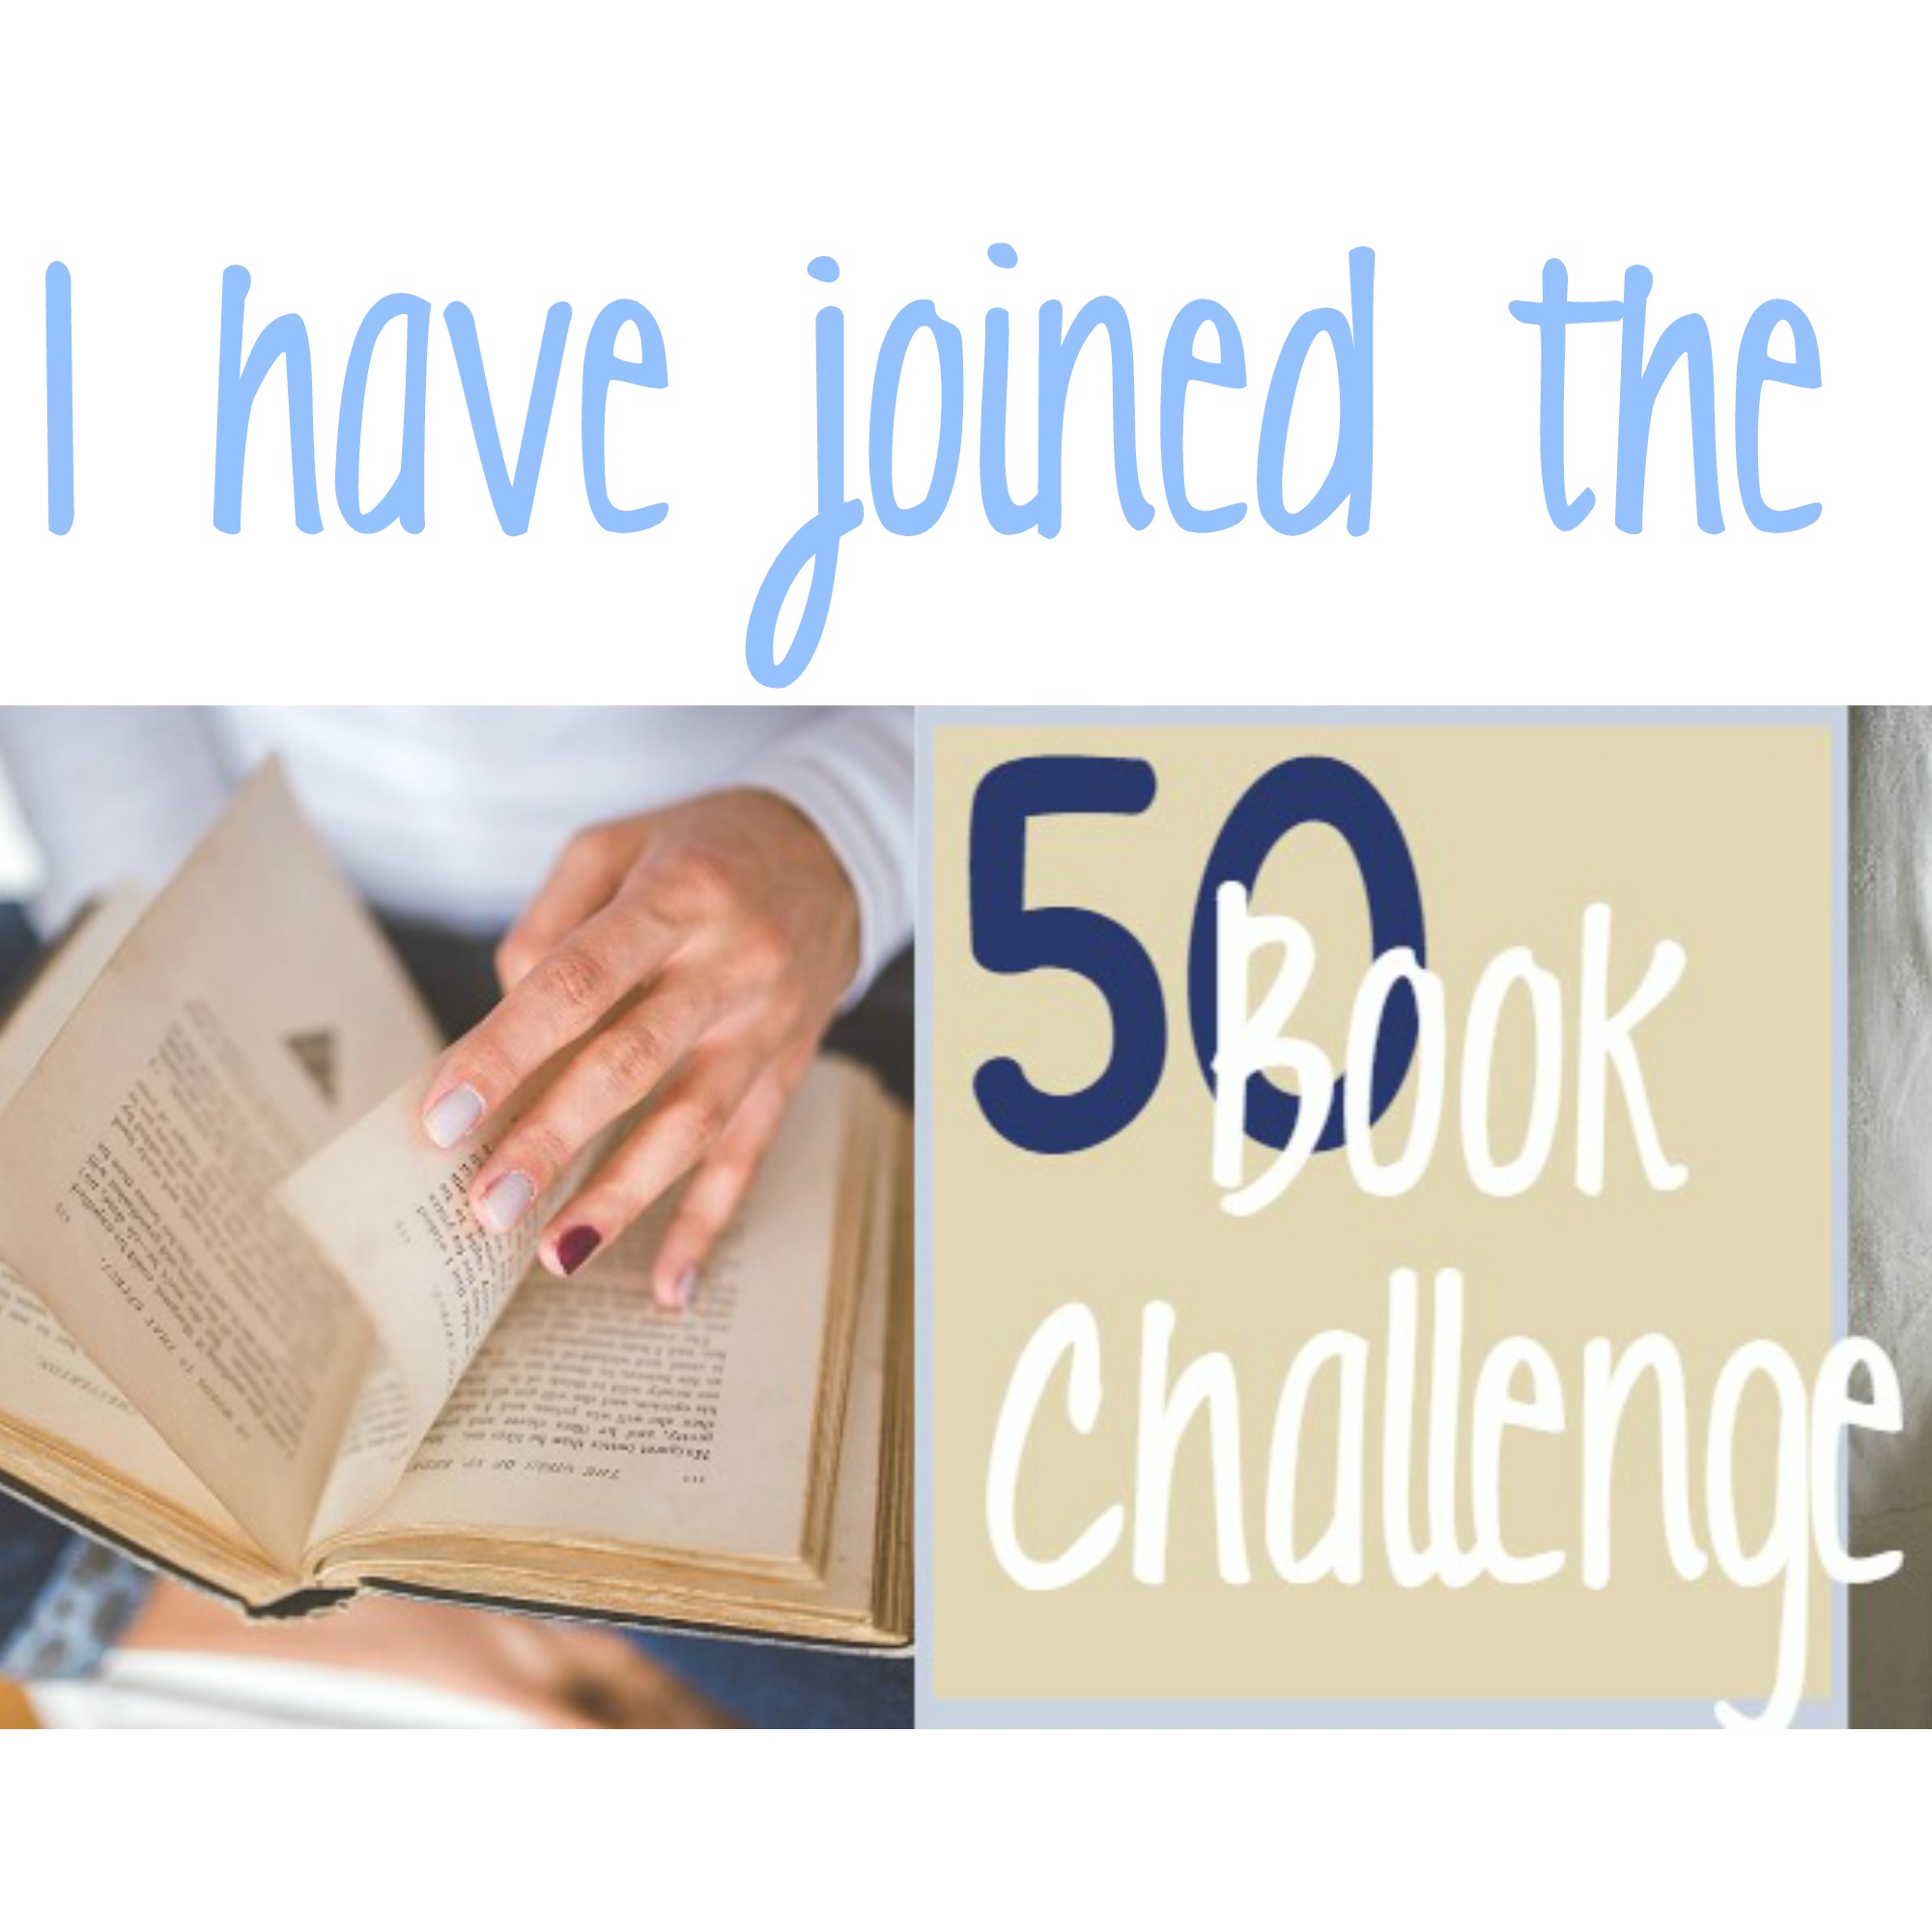 The 50 Book Challenge